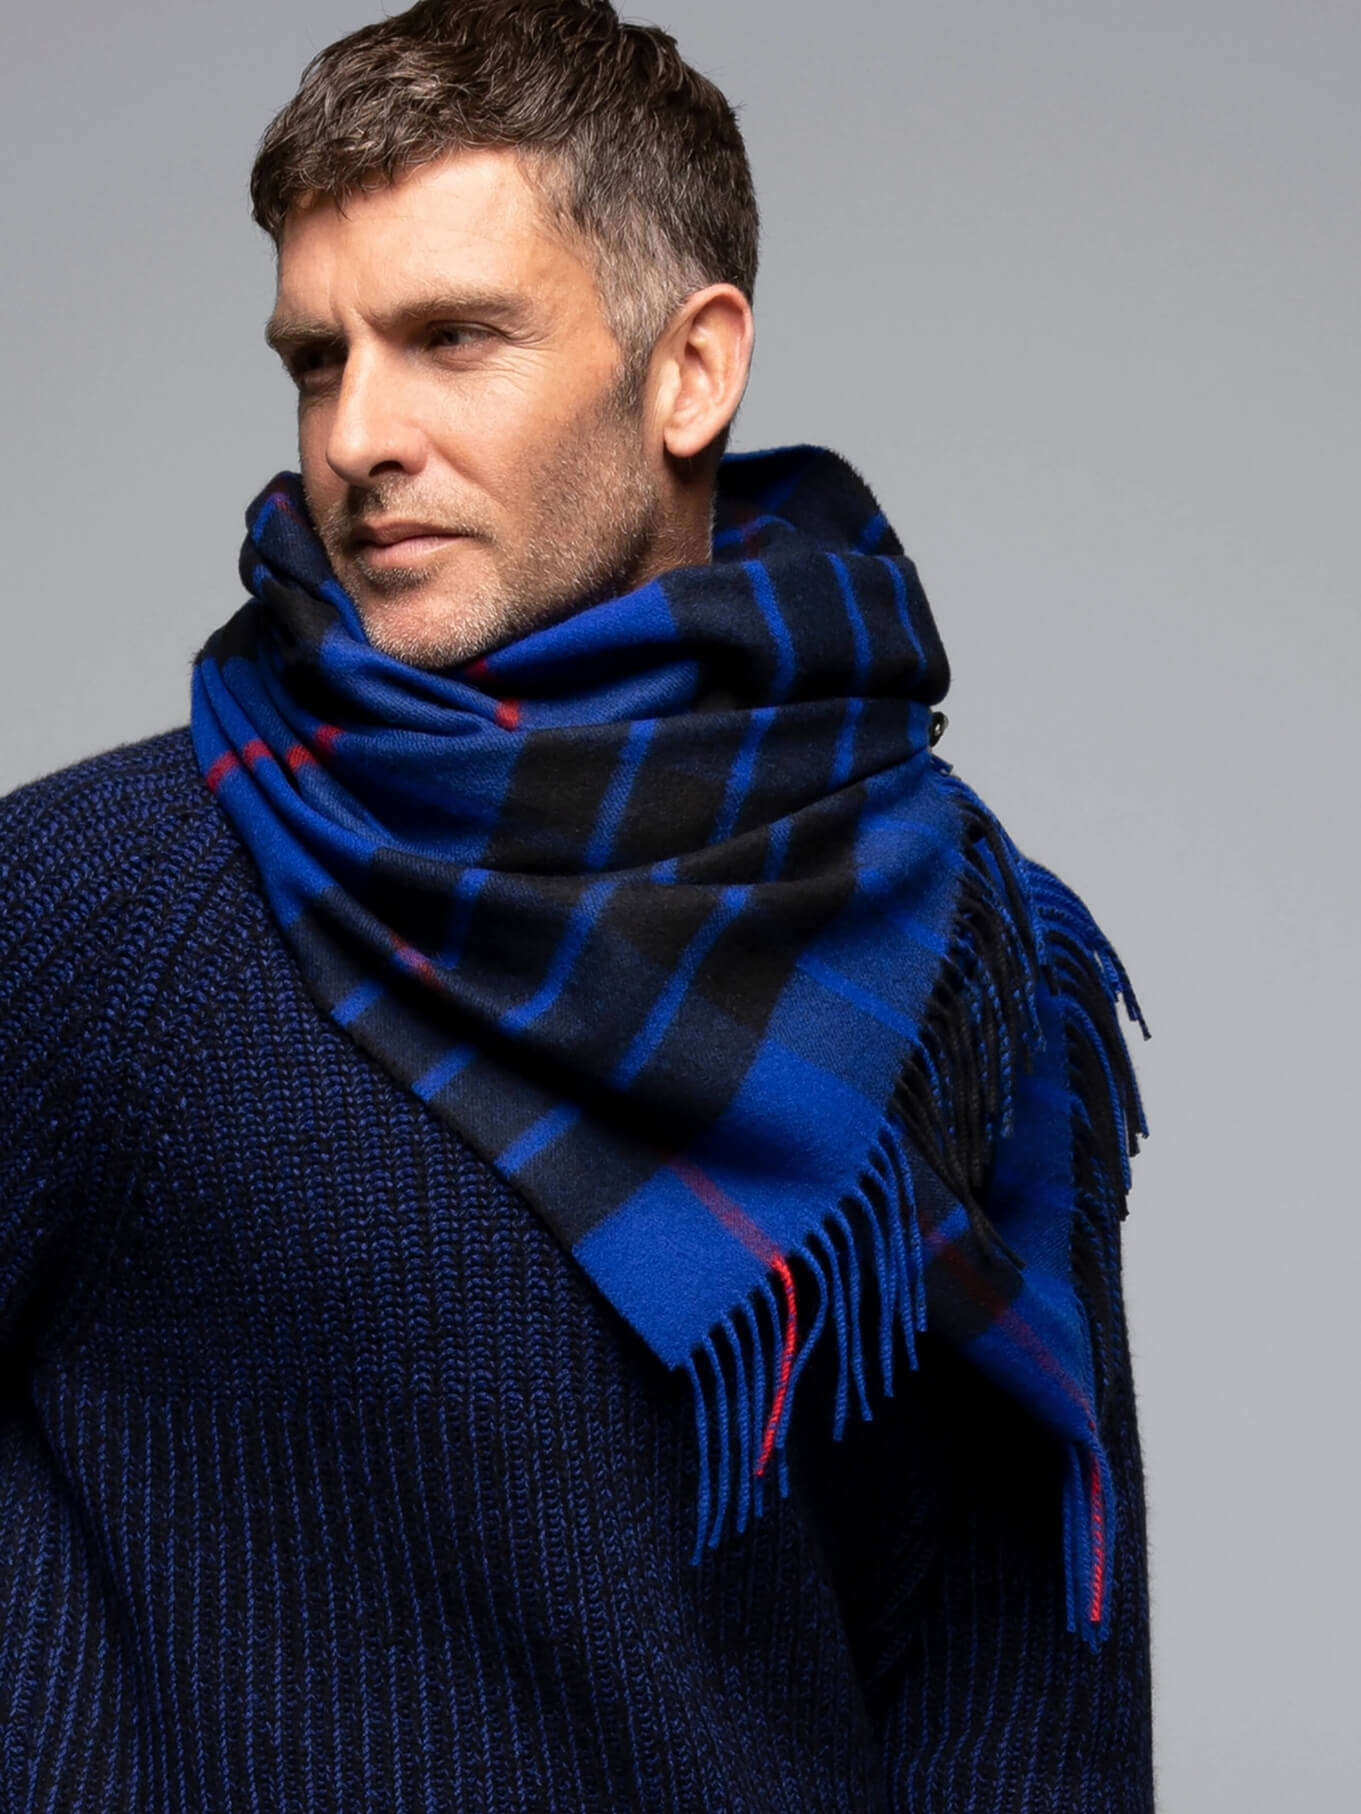 Johnstons of Elgin model wearing a Classic Tartan Cashmere Stole in Burn of Tynet, on a grey background